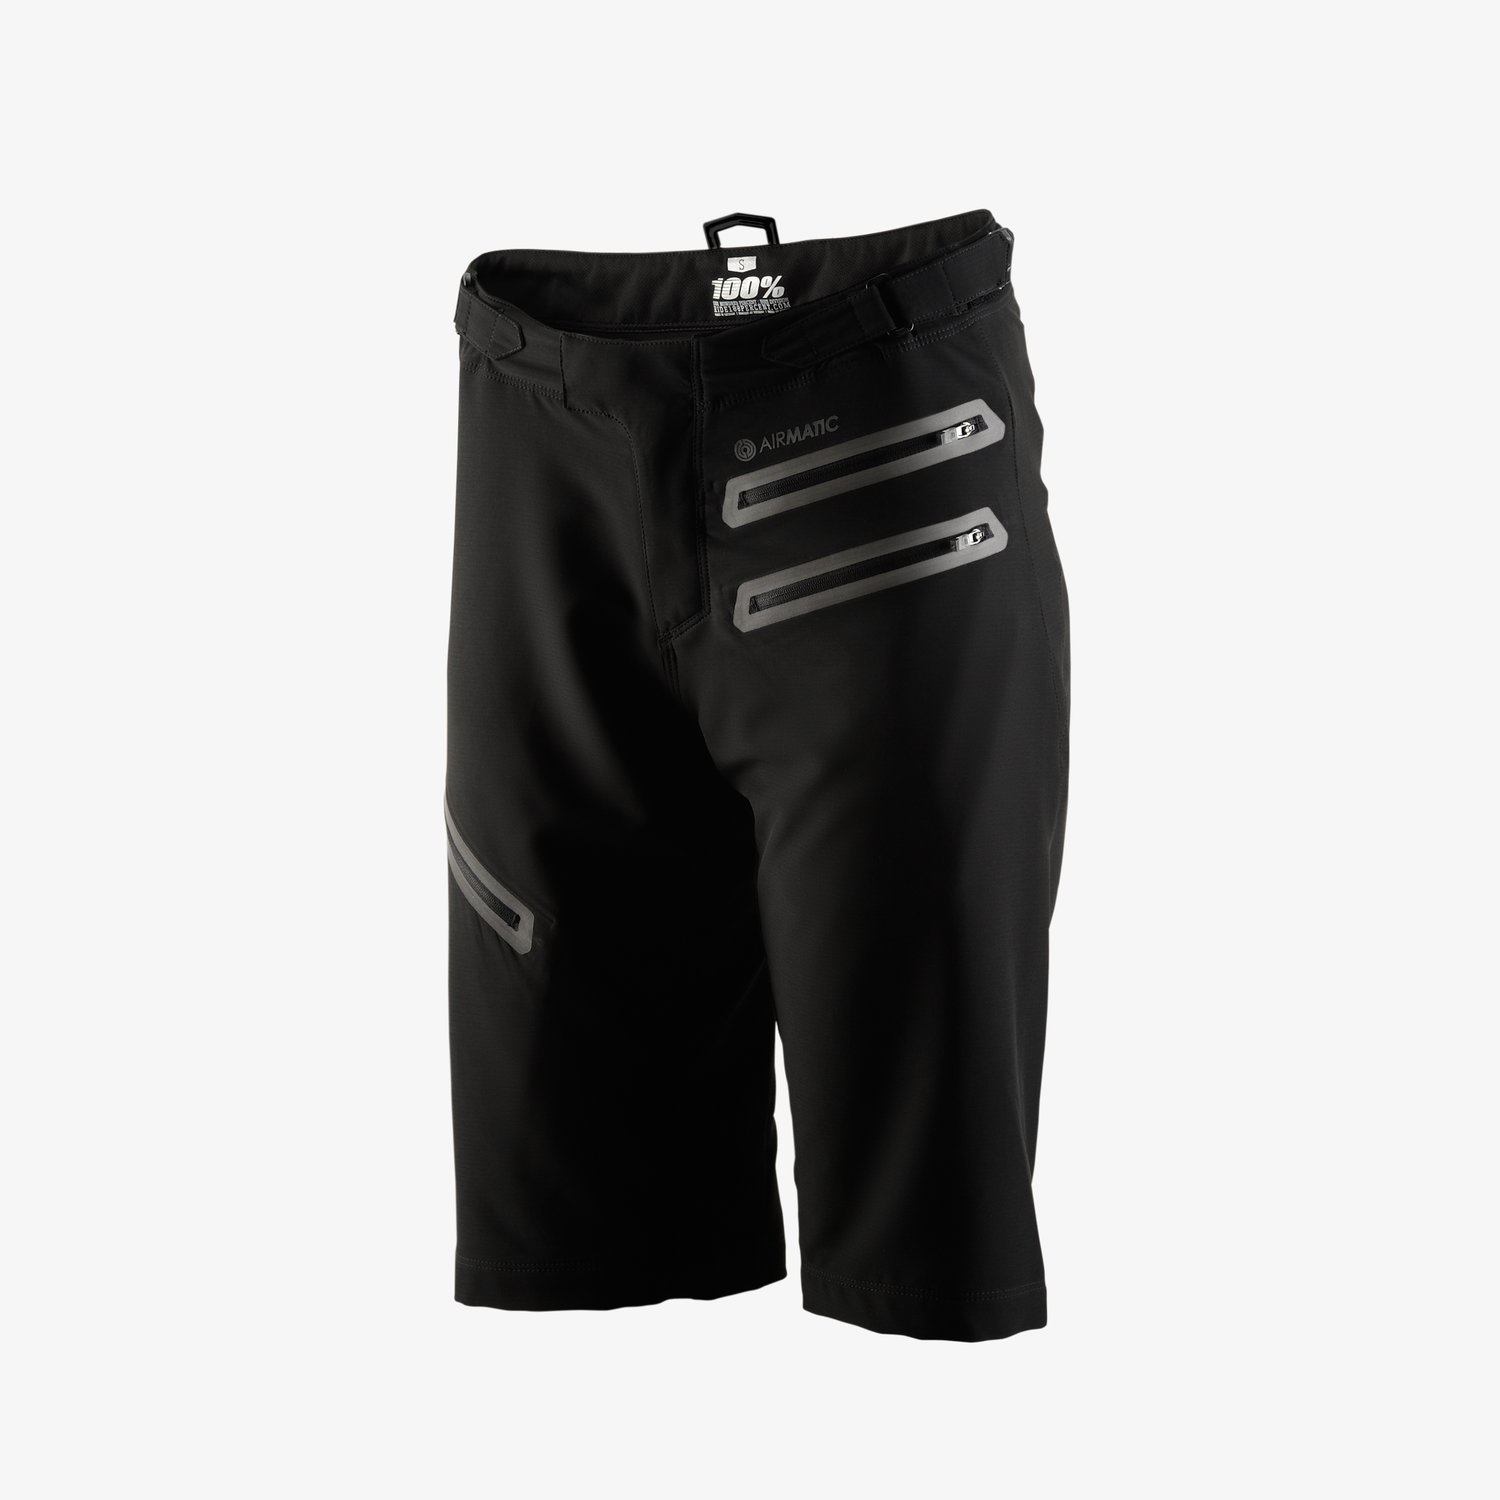 100% Airmatic 2 wmns short - no liner